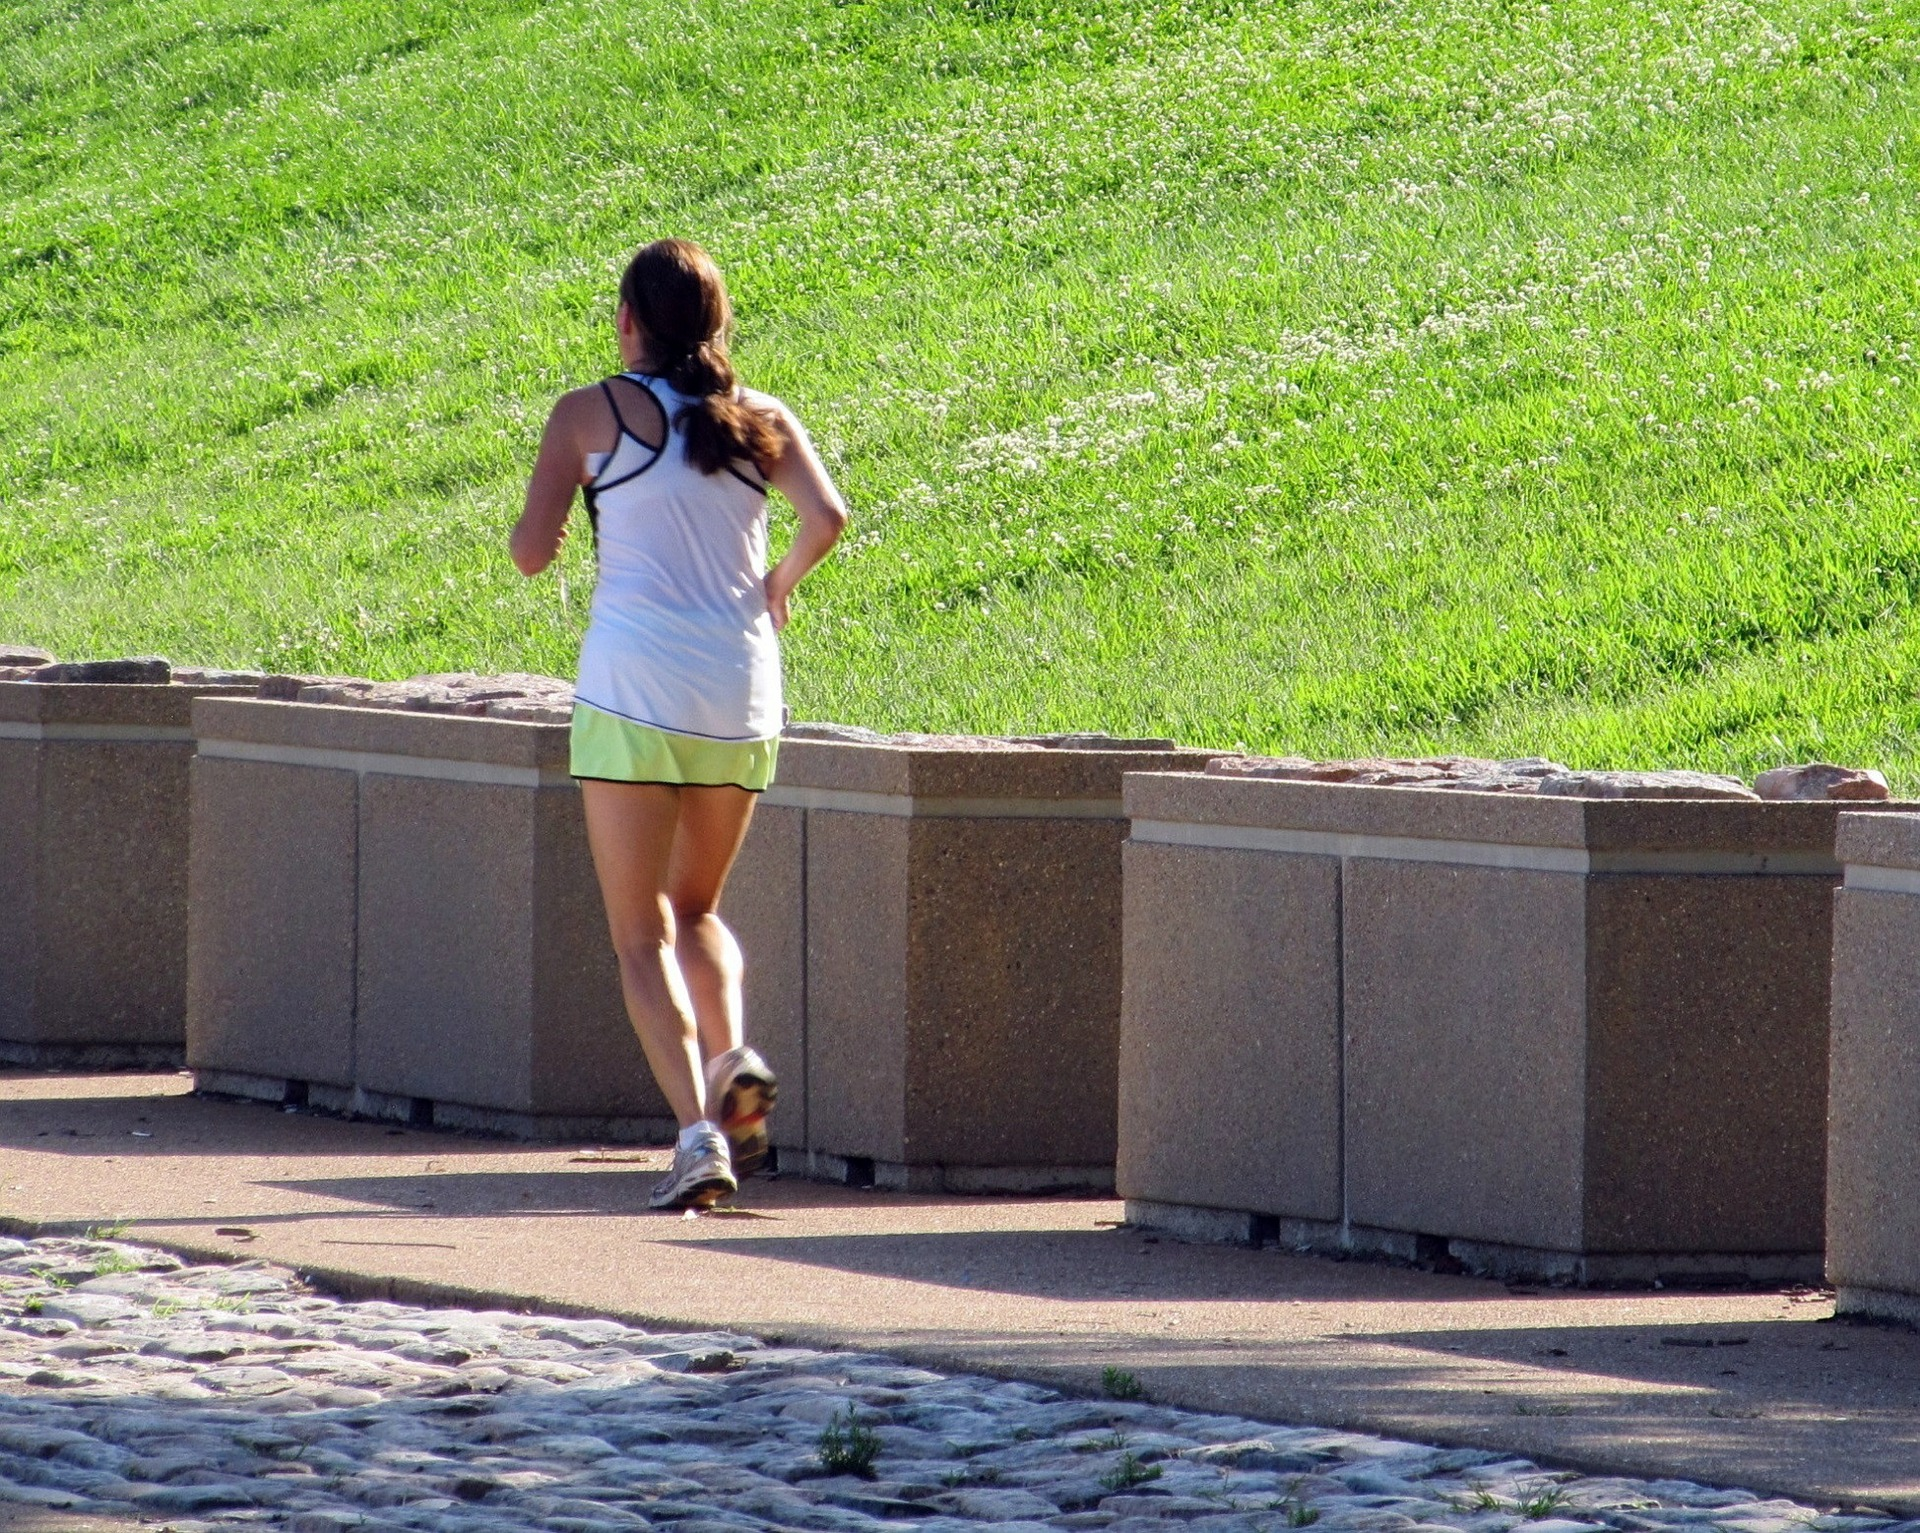 Woman running, Exercising and Eating